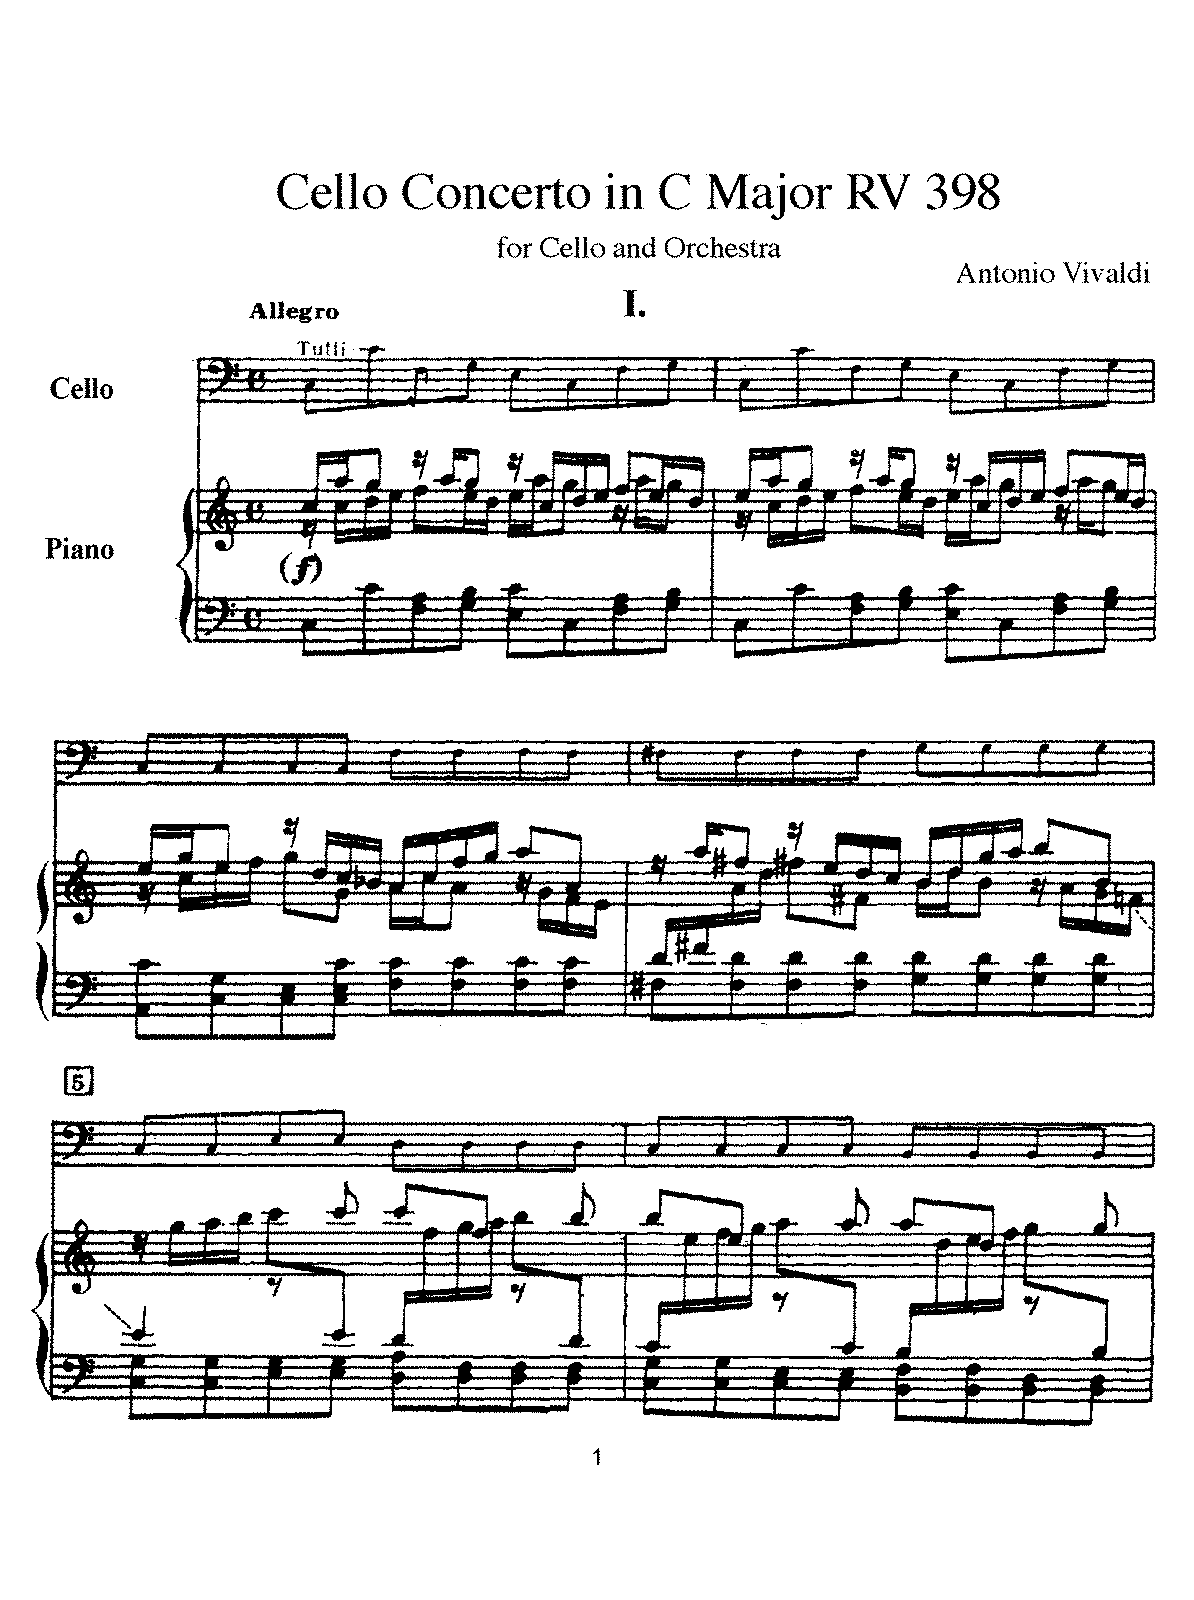 PMLP32507-Vivaldi - Cello Concerto in C Major RV398 piano.pdf